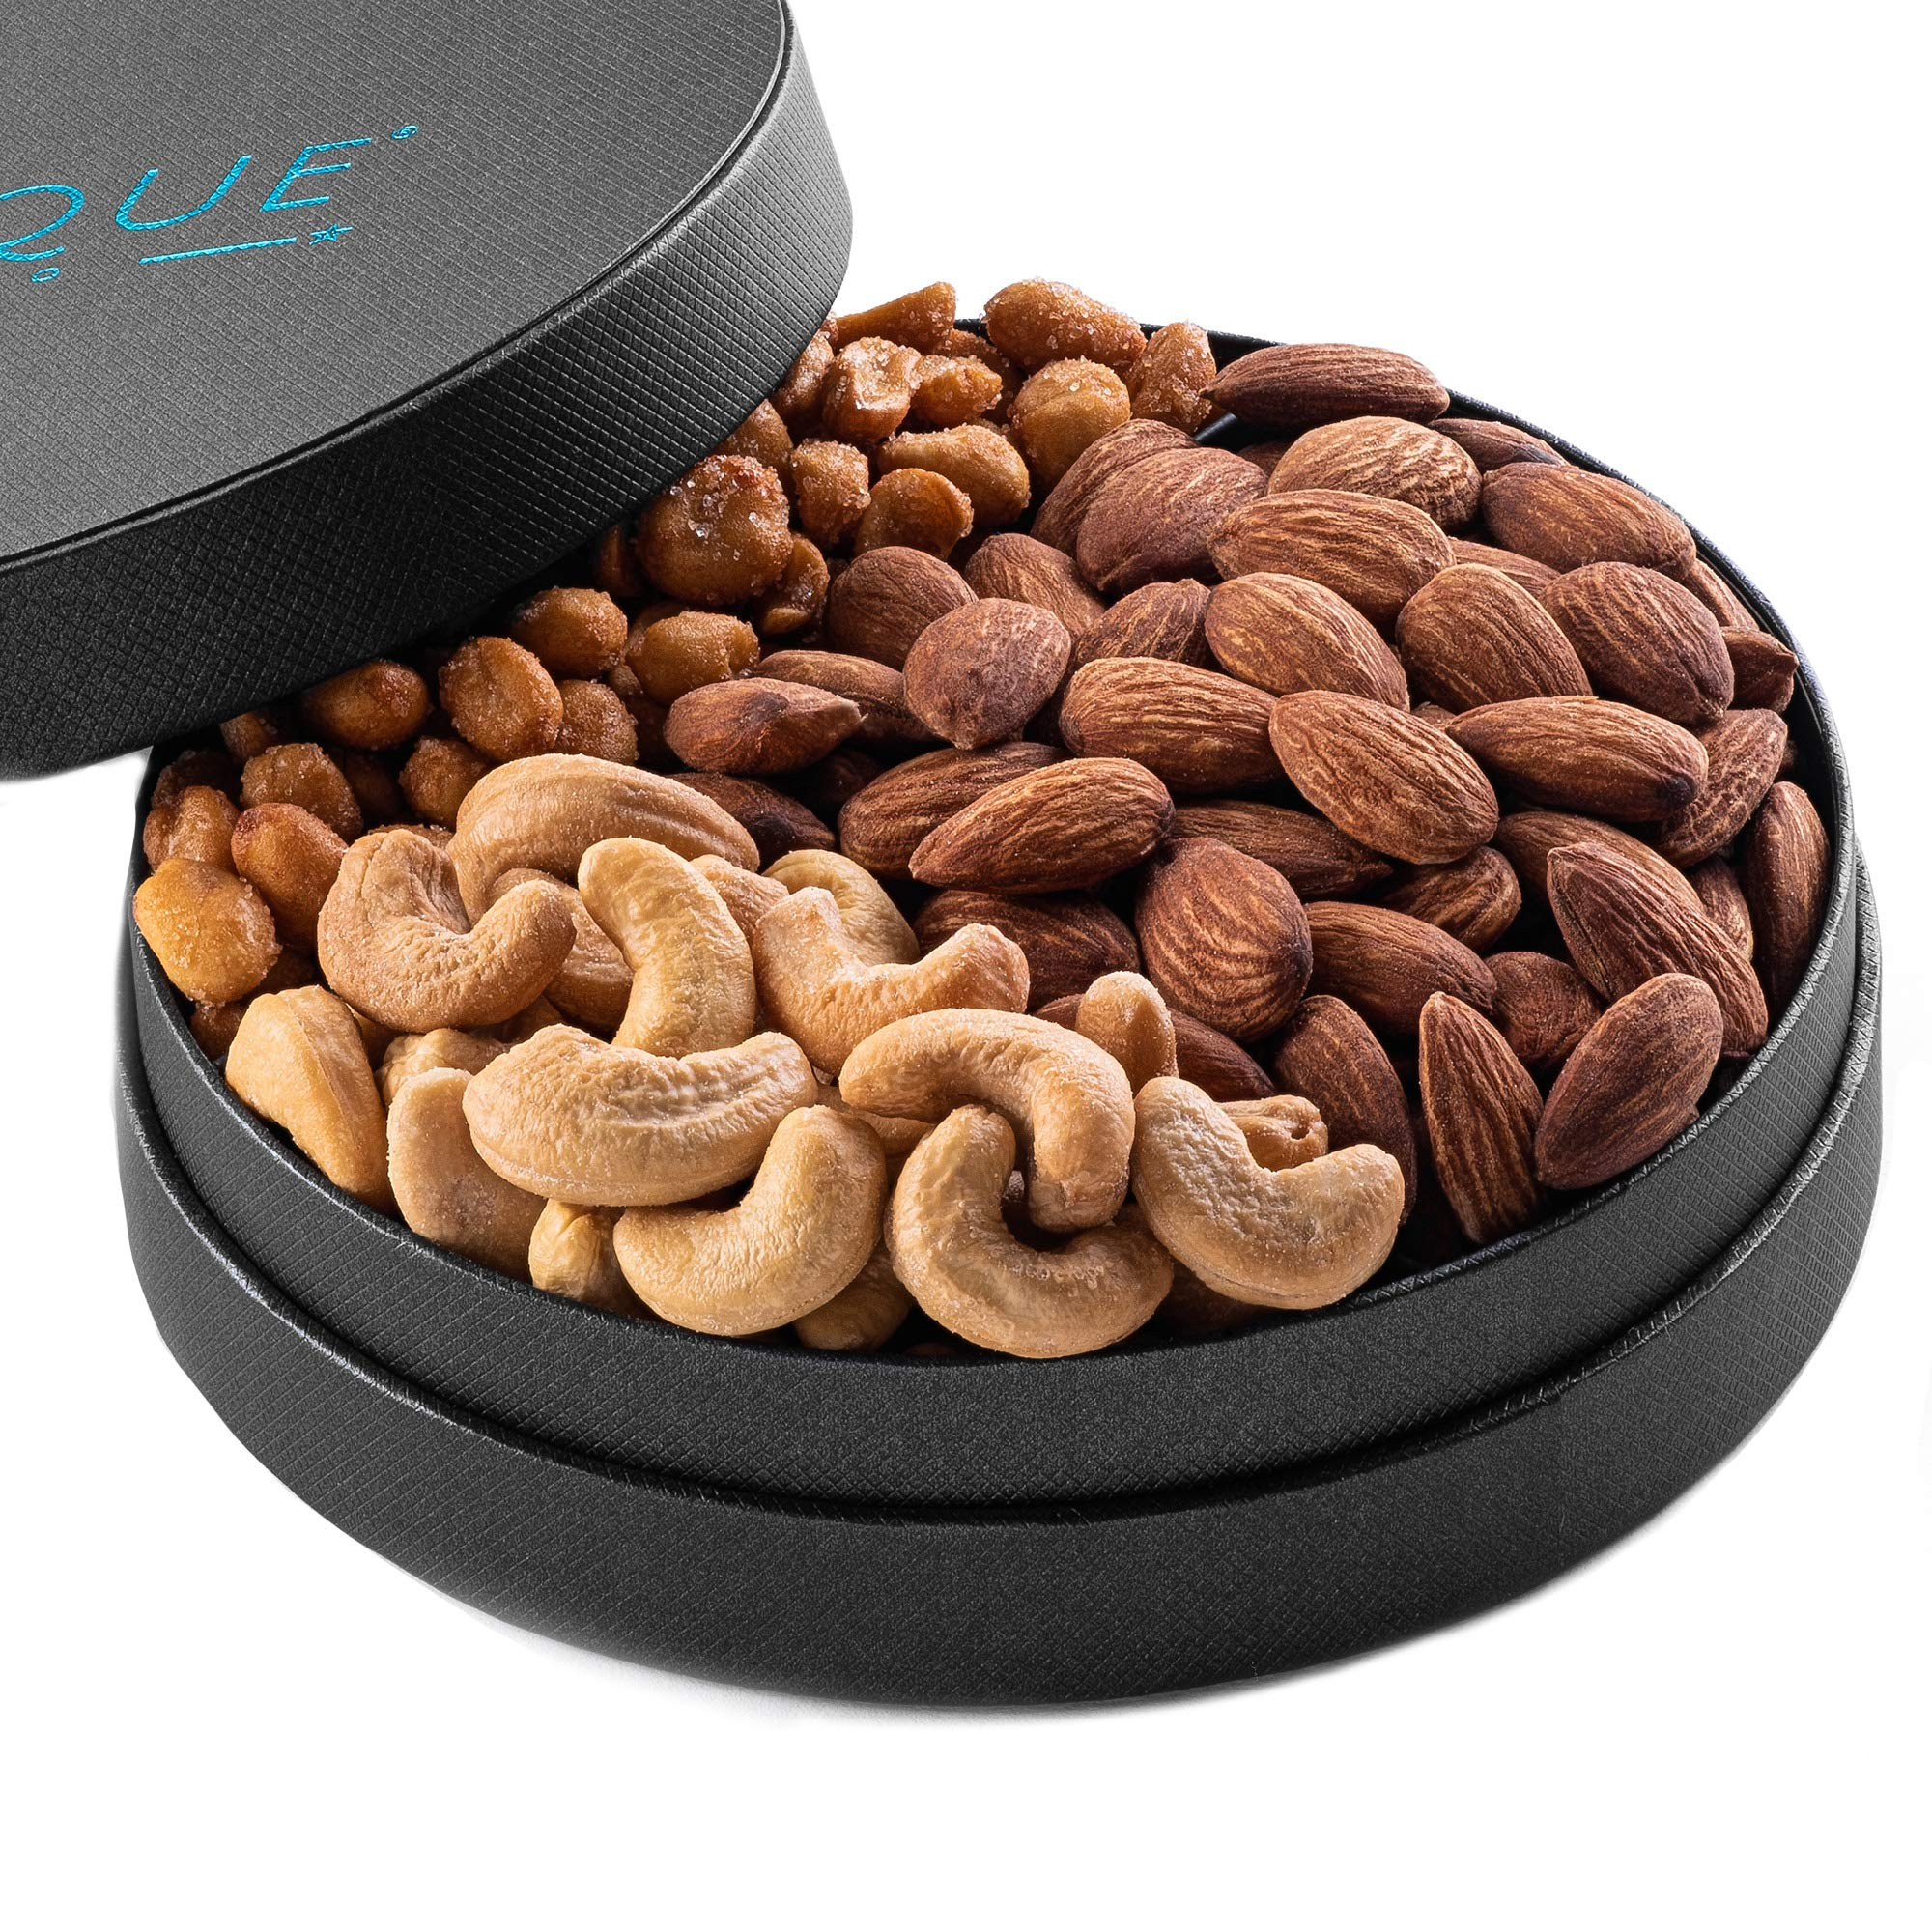 Gourmet Nut Gift Tray - 6'', Freshly Roasted Assorted Nuts for Mothers Day, Fathers Day,Holiday and Corporate Gifting, Valentines Day, Thanksgiving Hostess Gift